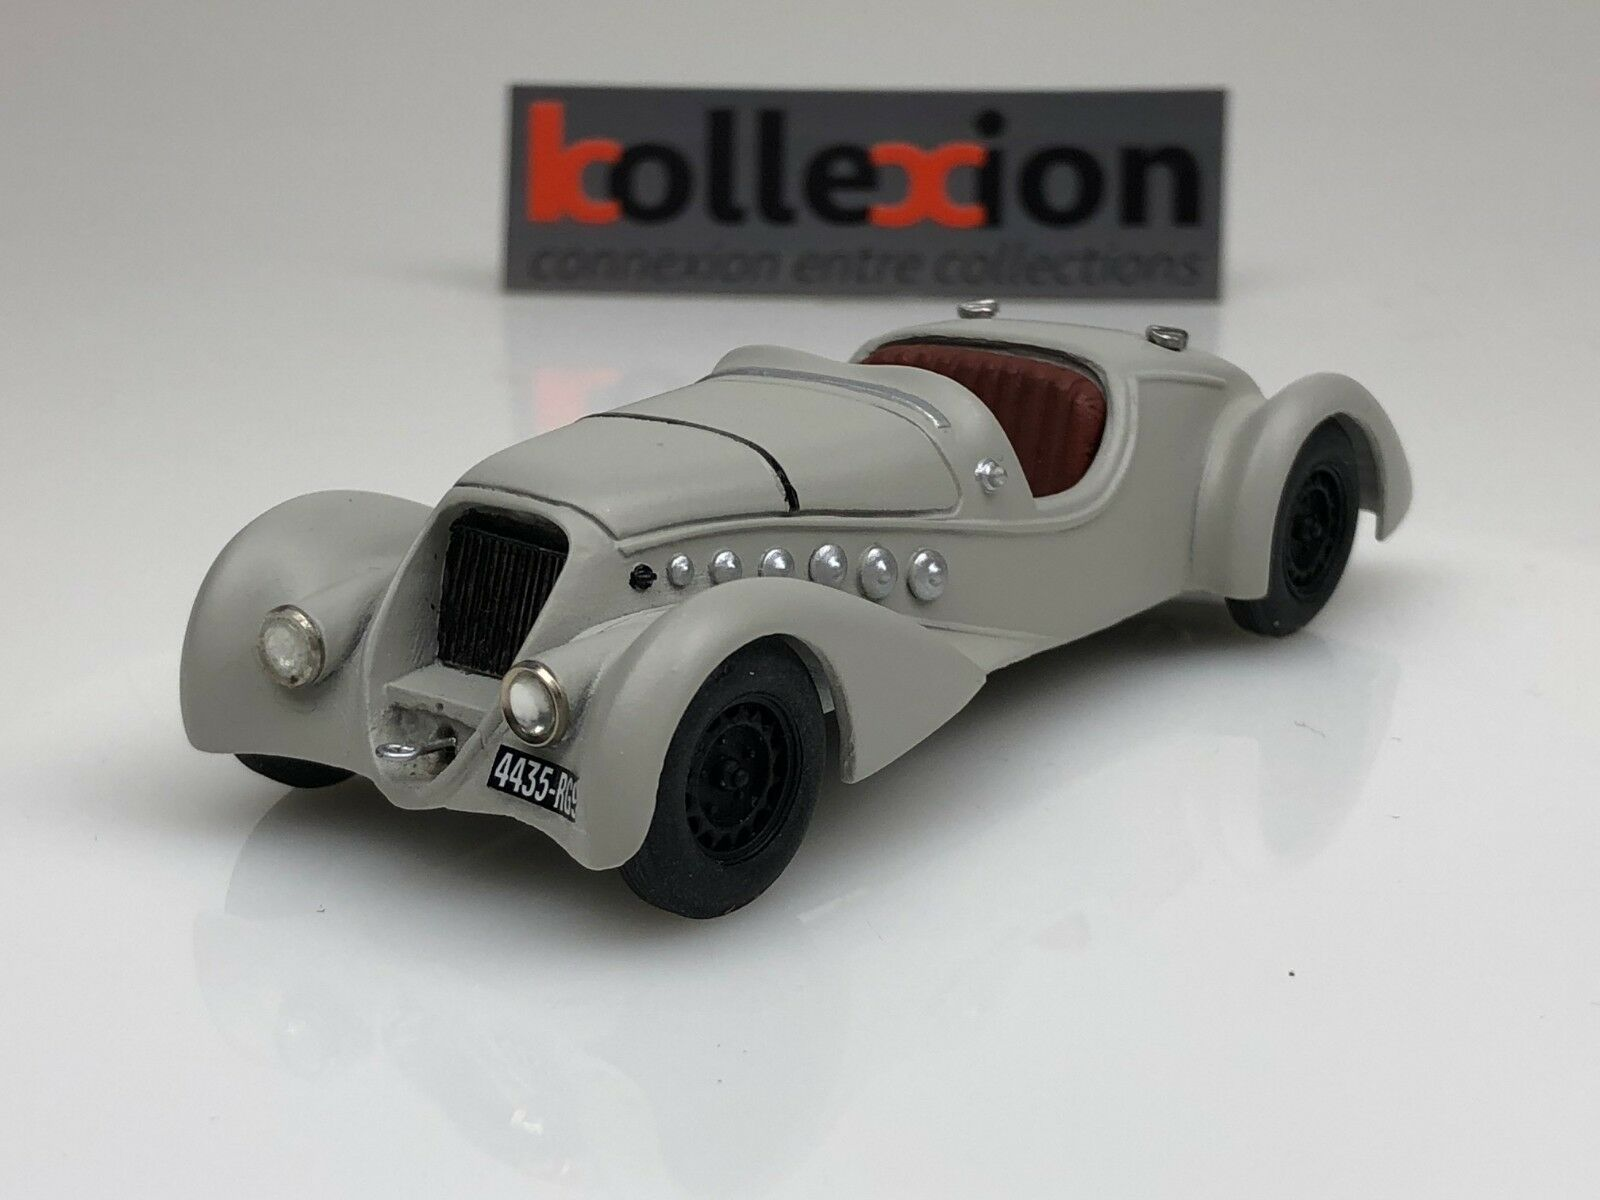 ESDO 84 PEUGEOT Darl'Mat Record Monthléry 1936 1.43